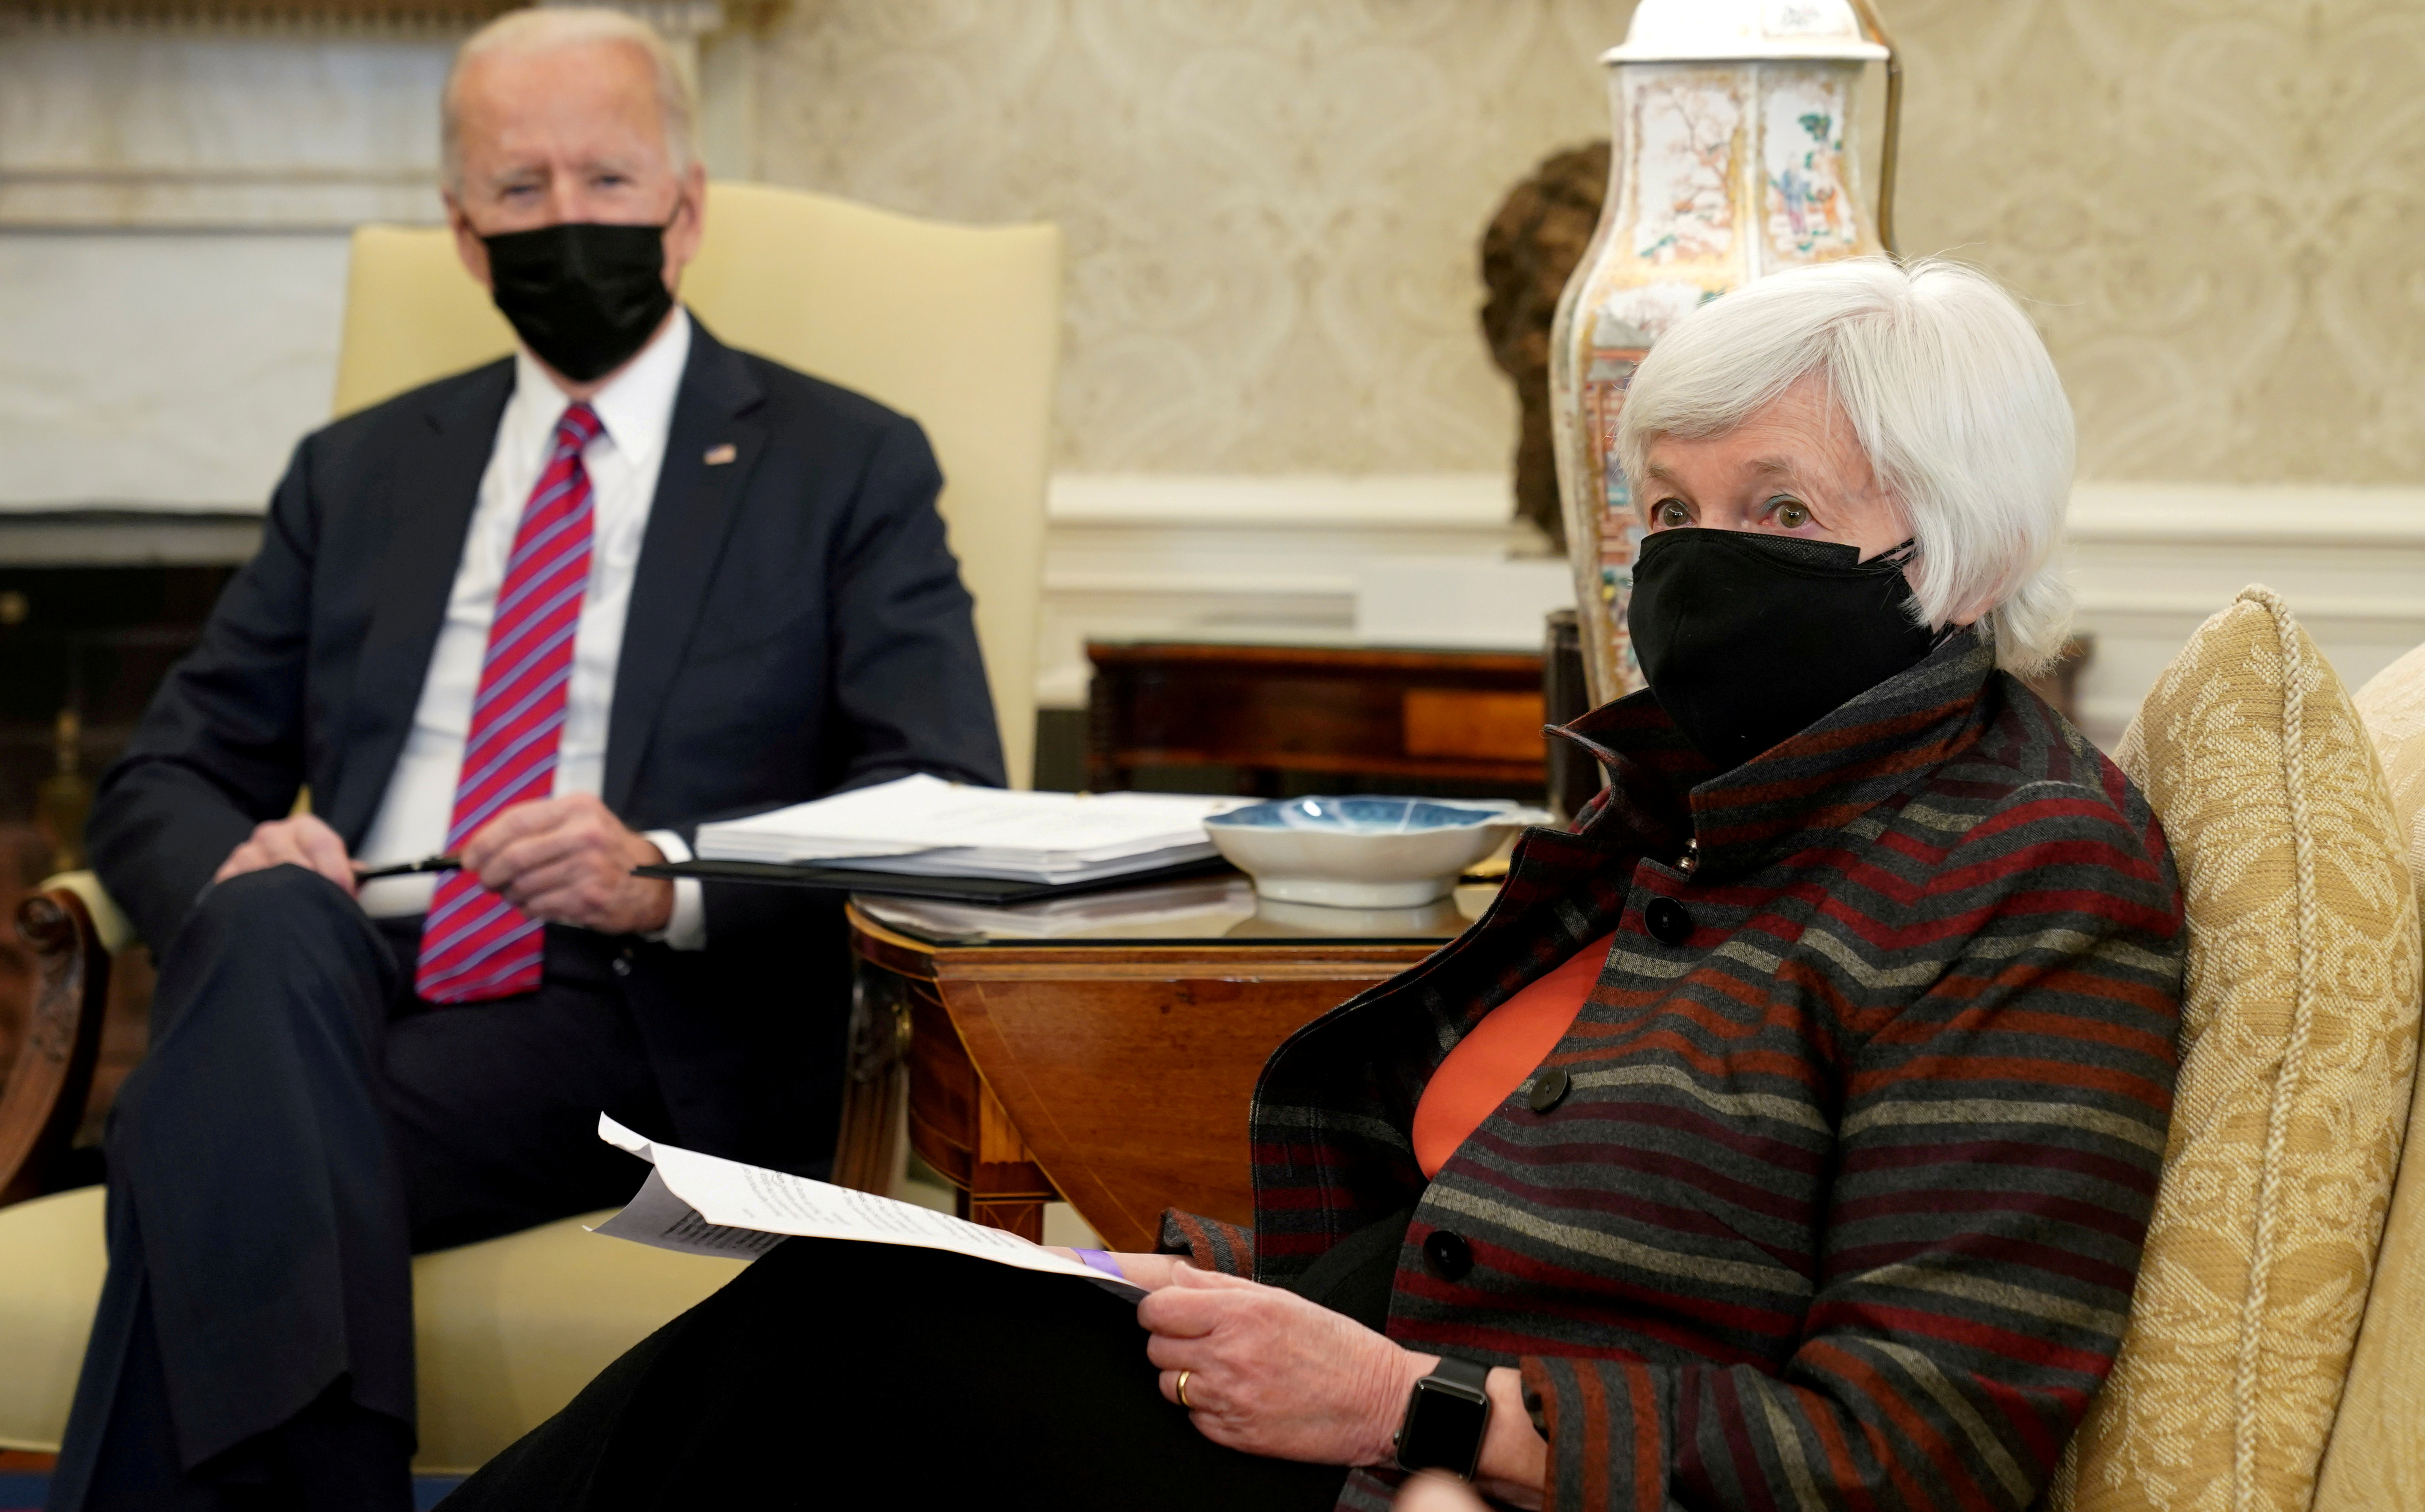 U.S. President Joe Biden meets with Treasury Secretary Janet Yellen in the Oval Office at the White House in Washington, U.S., January 29, 2021. REUTERS/Kevin Lamarque//File Photo